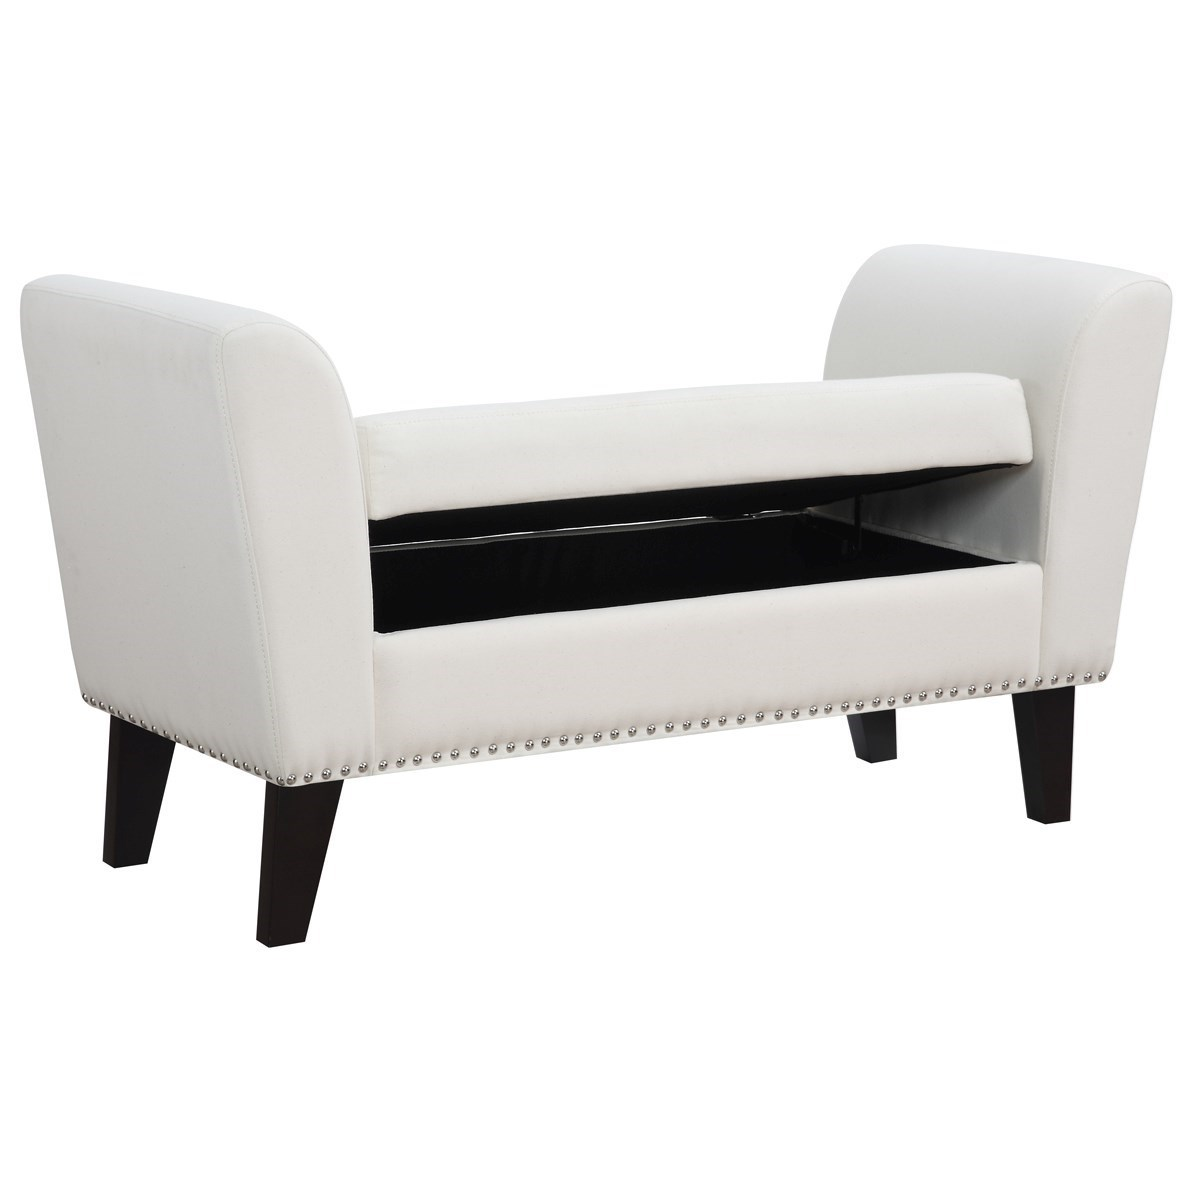 Diana Upholstered Storage Bench by Emerald at Michael Alan Furniture & Design